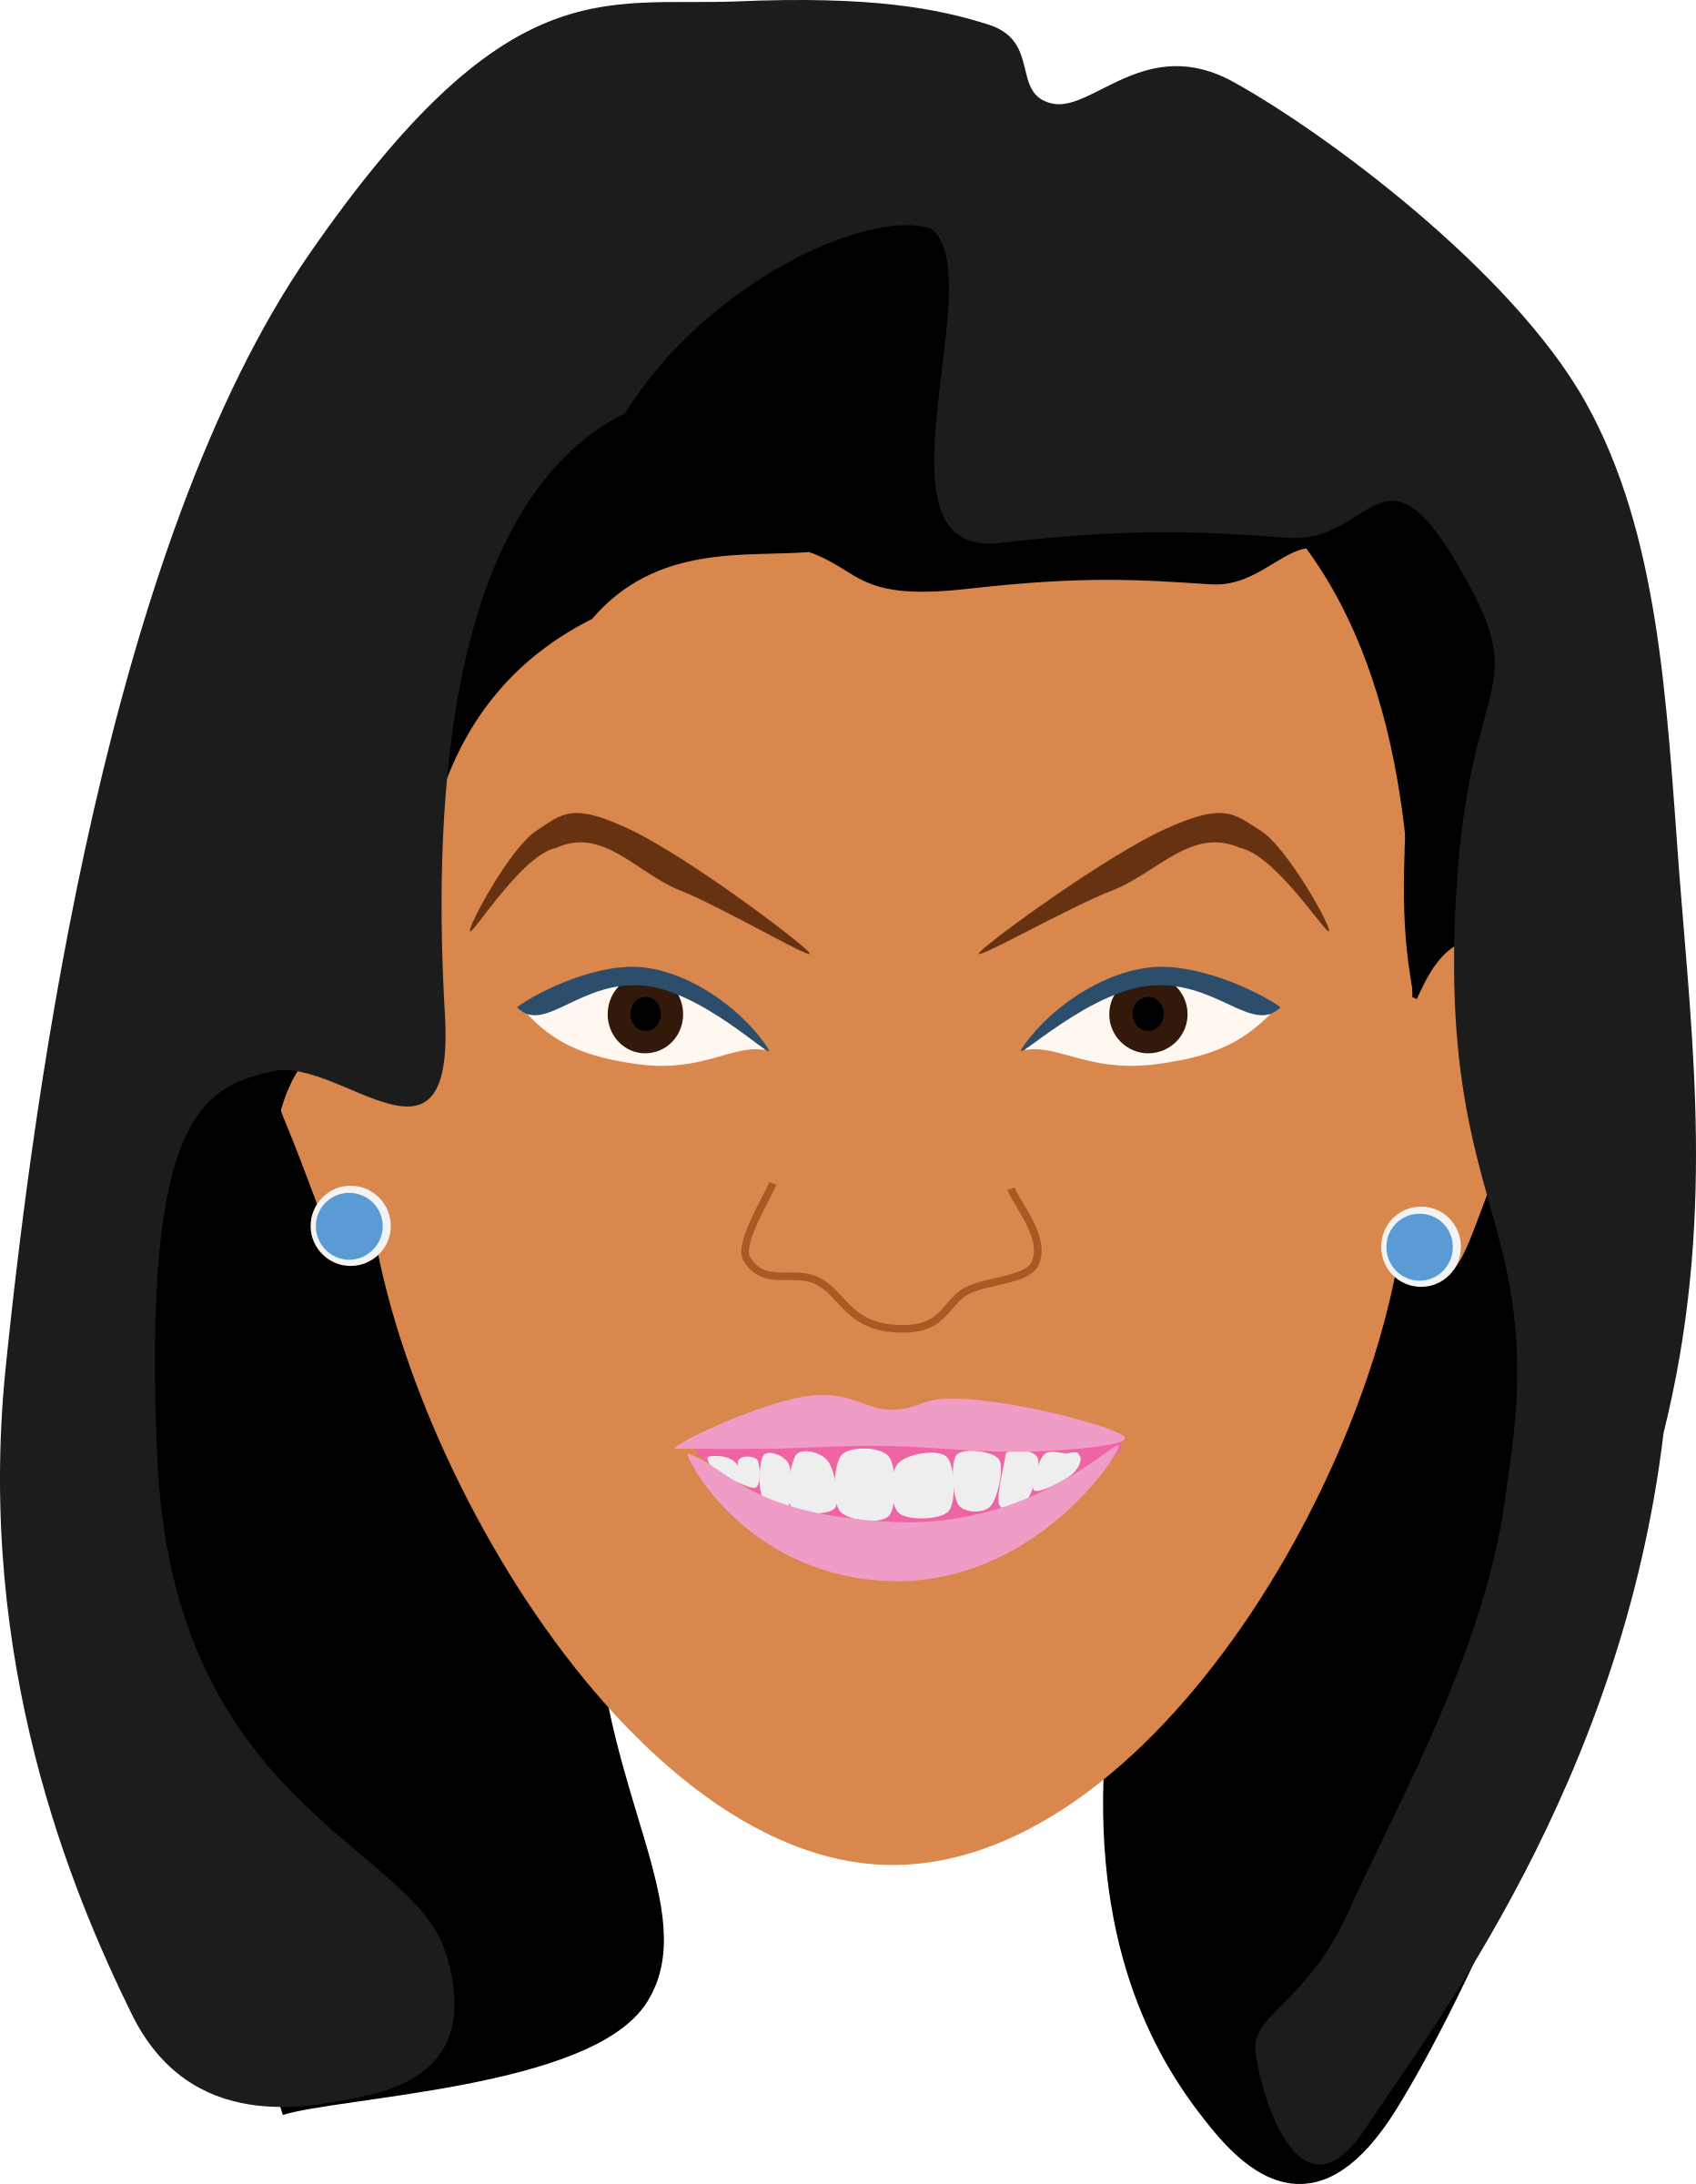 Eyebrow clipart arched. Woman in makeup big